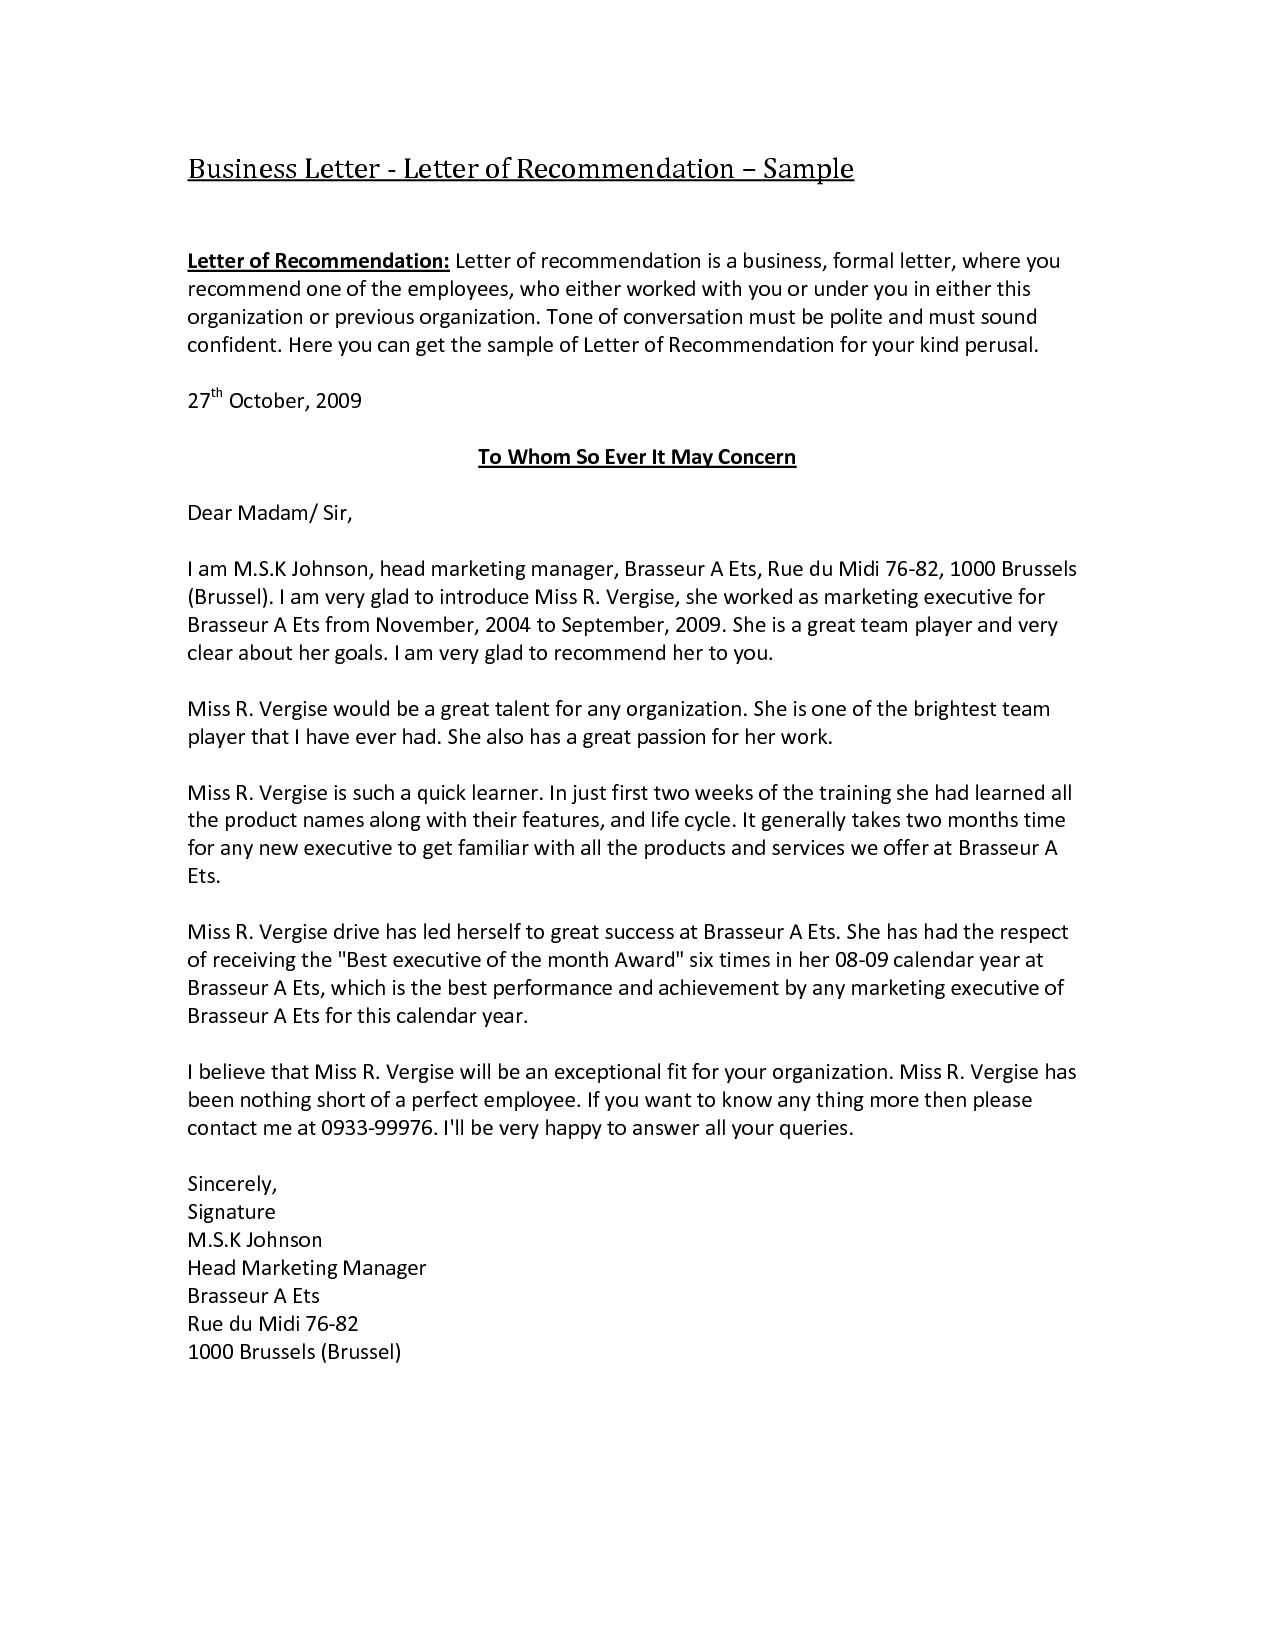 Business Reference Letter Template Word - Business Re Mendation Letter Template Acurnamedia